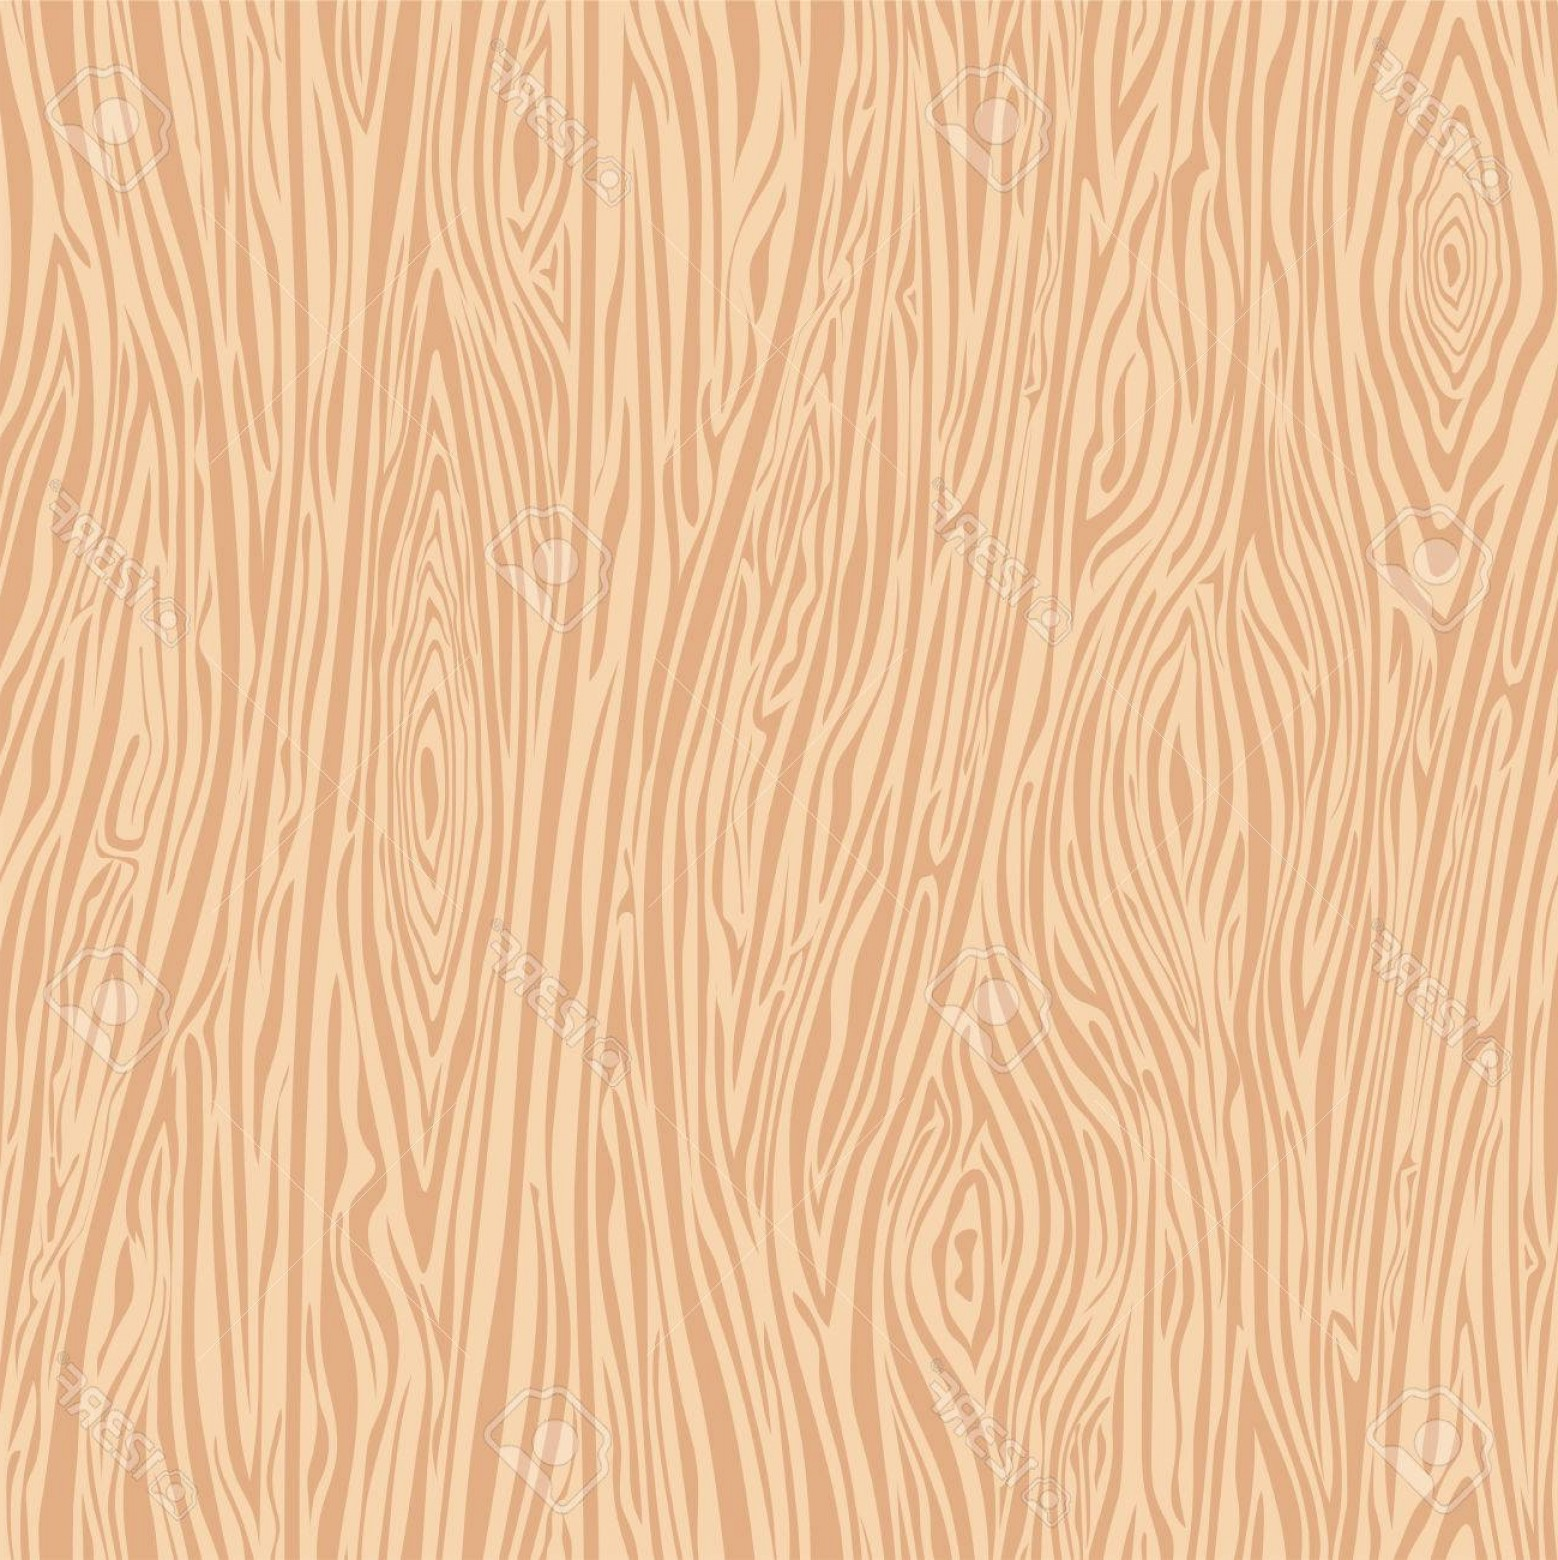 Wood Grain Texture Vector: Photostock Vector Seamless Painted Wood Texture Woodgrain Background For Table Floor Wall Boards Fence Panel And Other